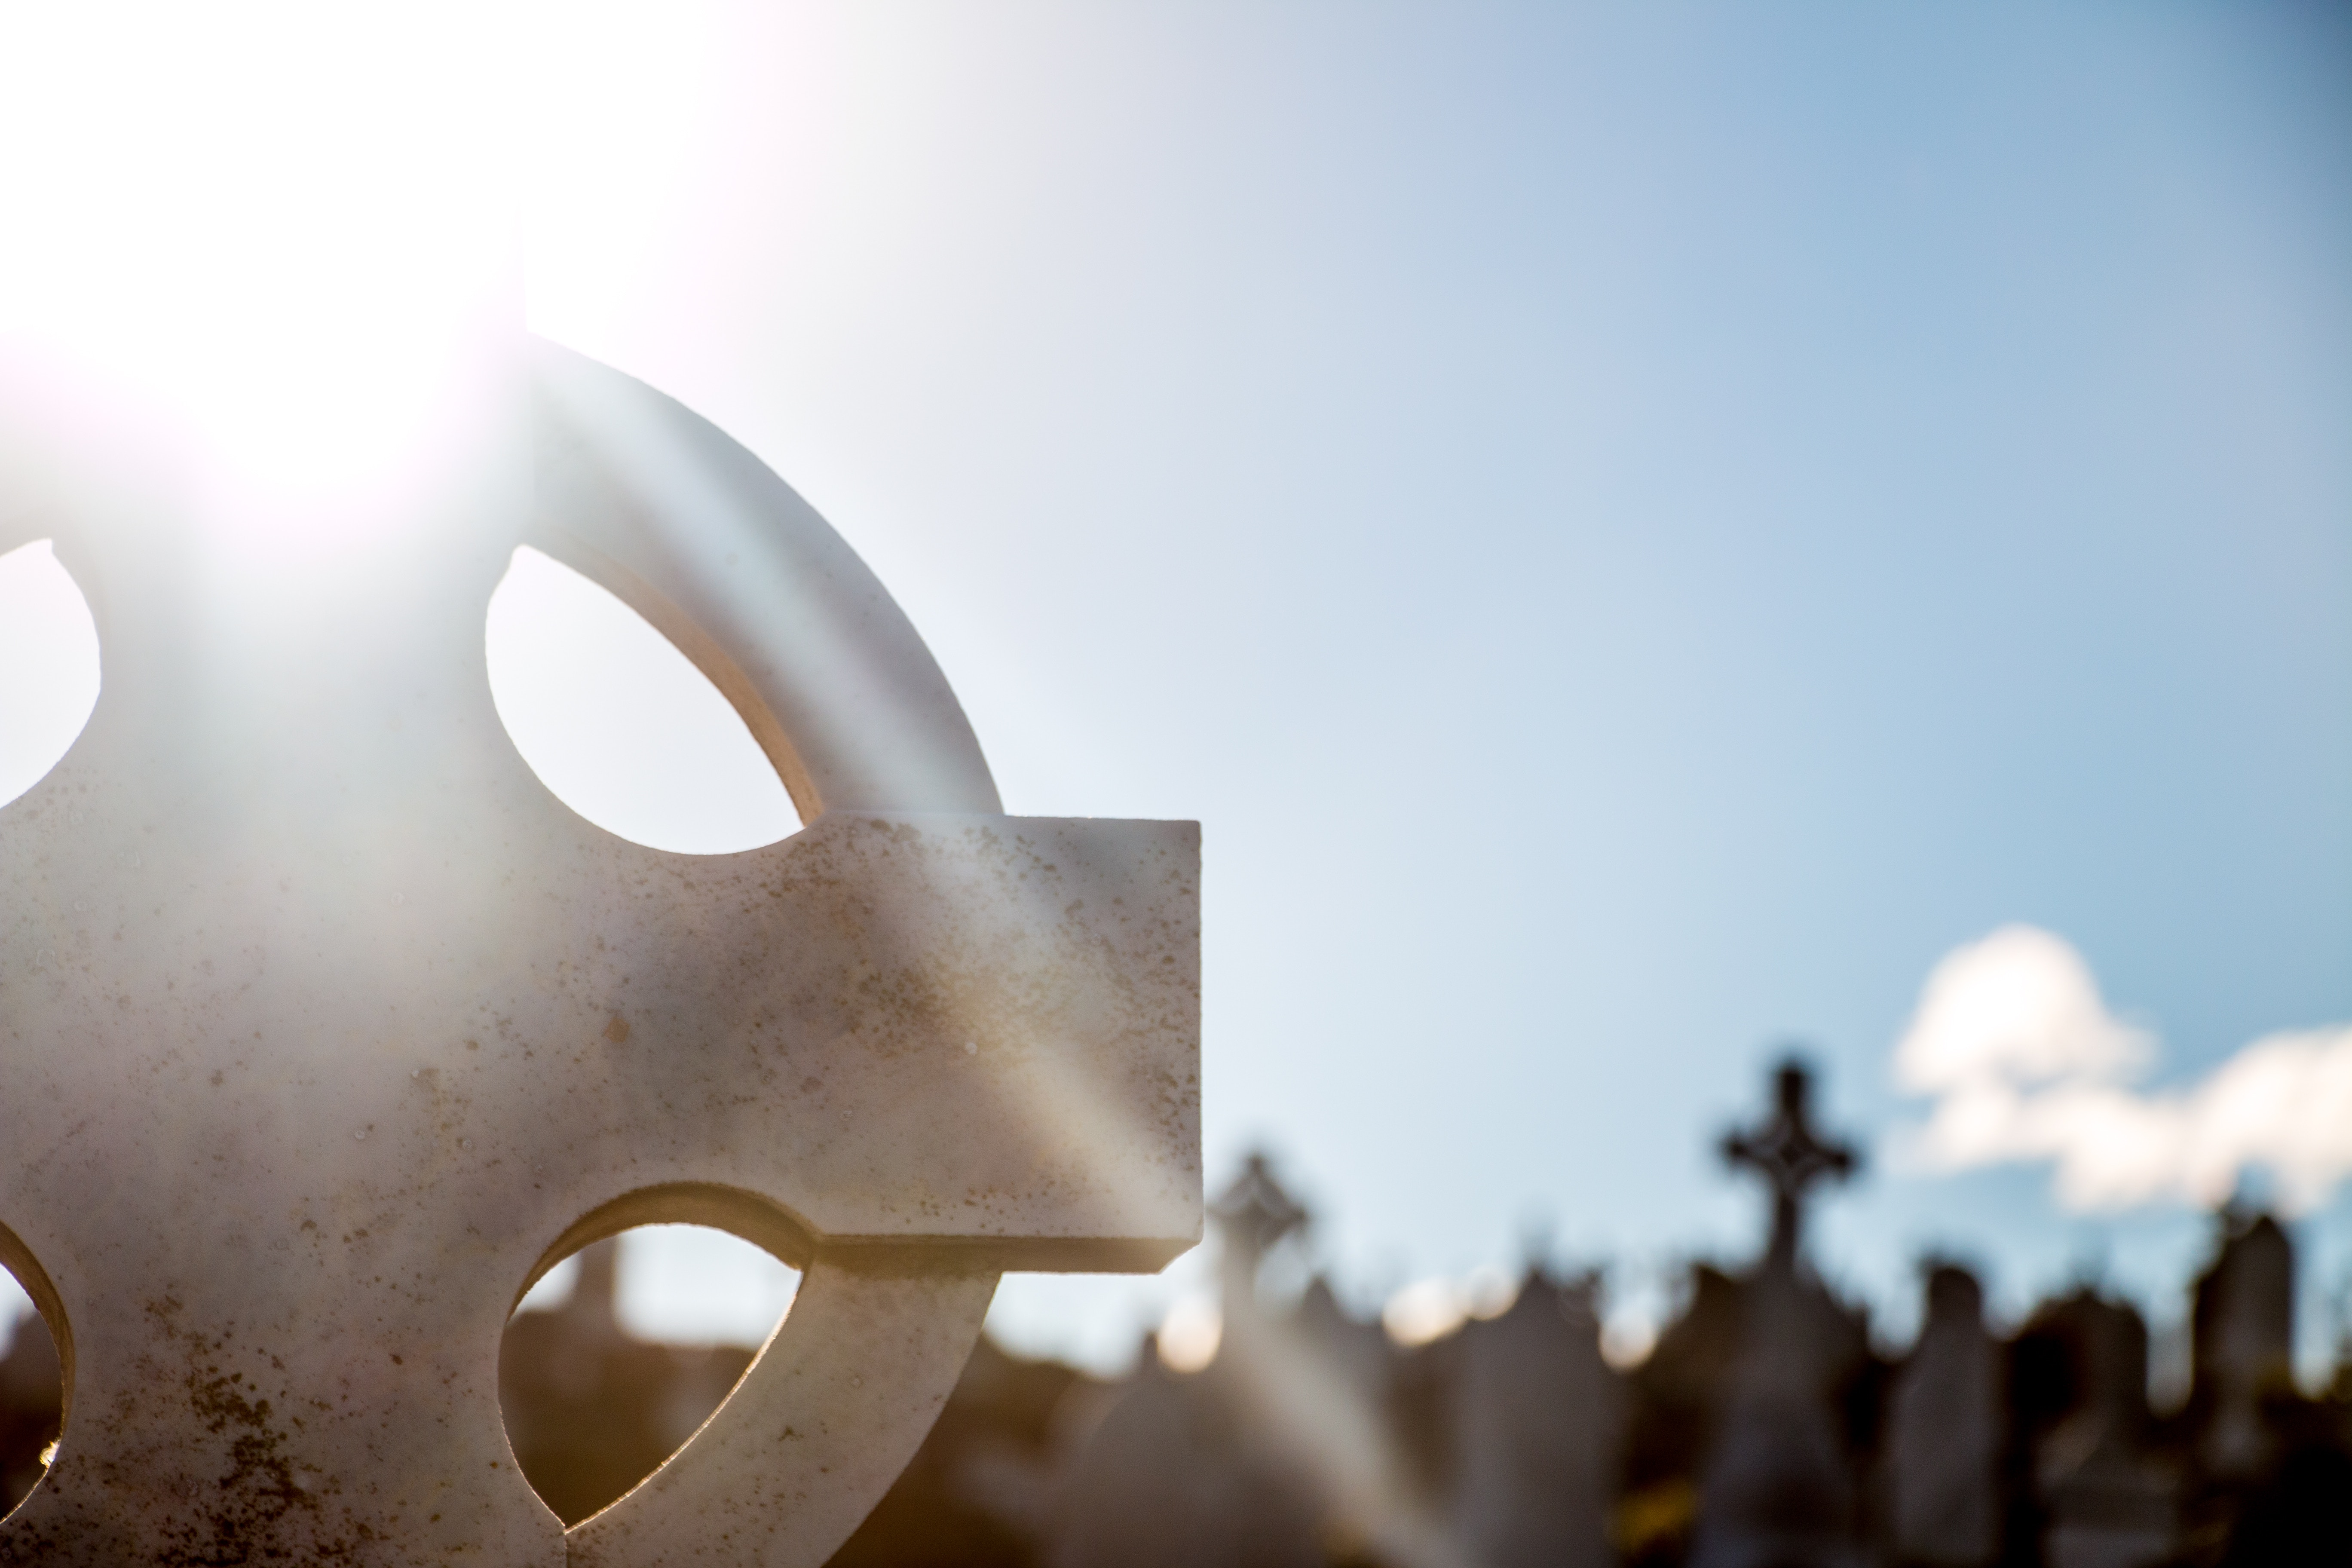 Cemeteries are historic landmarks that tell a story.